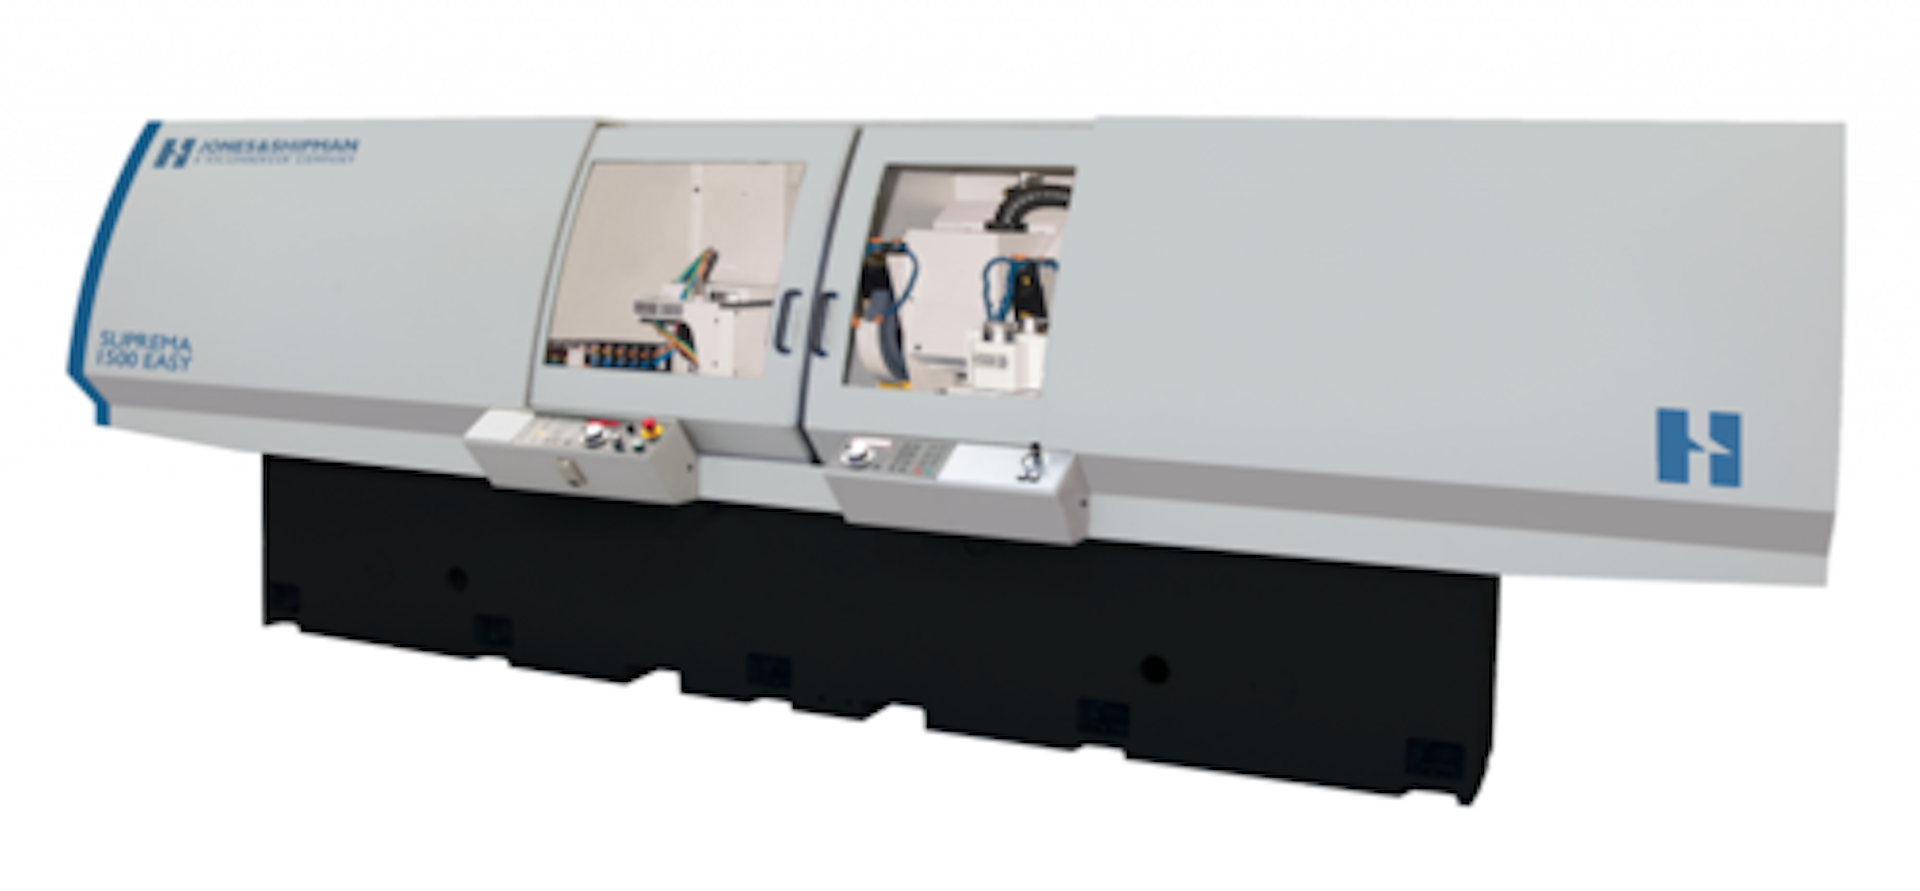 https://www.metalite.co.uk/wp-content/uploads/capabilities/universal-grinding/JS-Suprema-1500.png